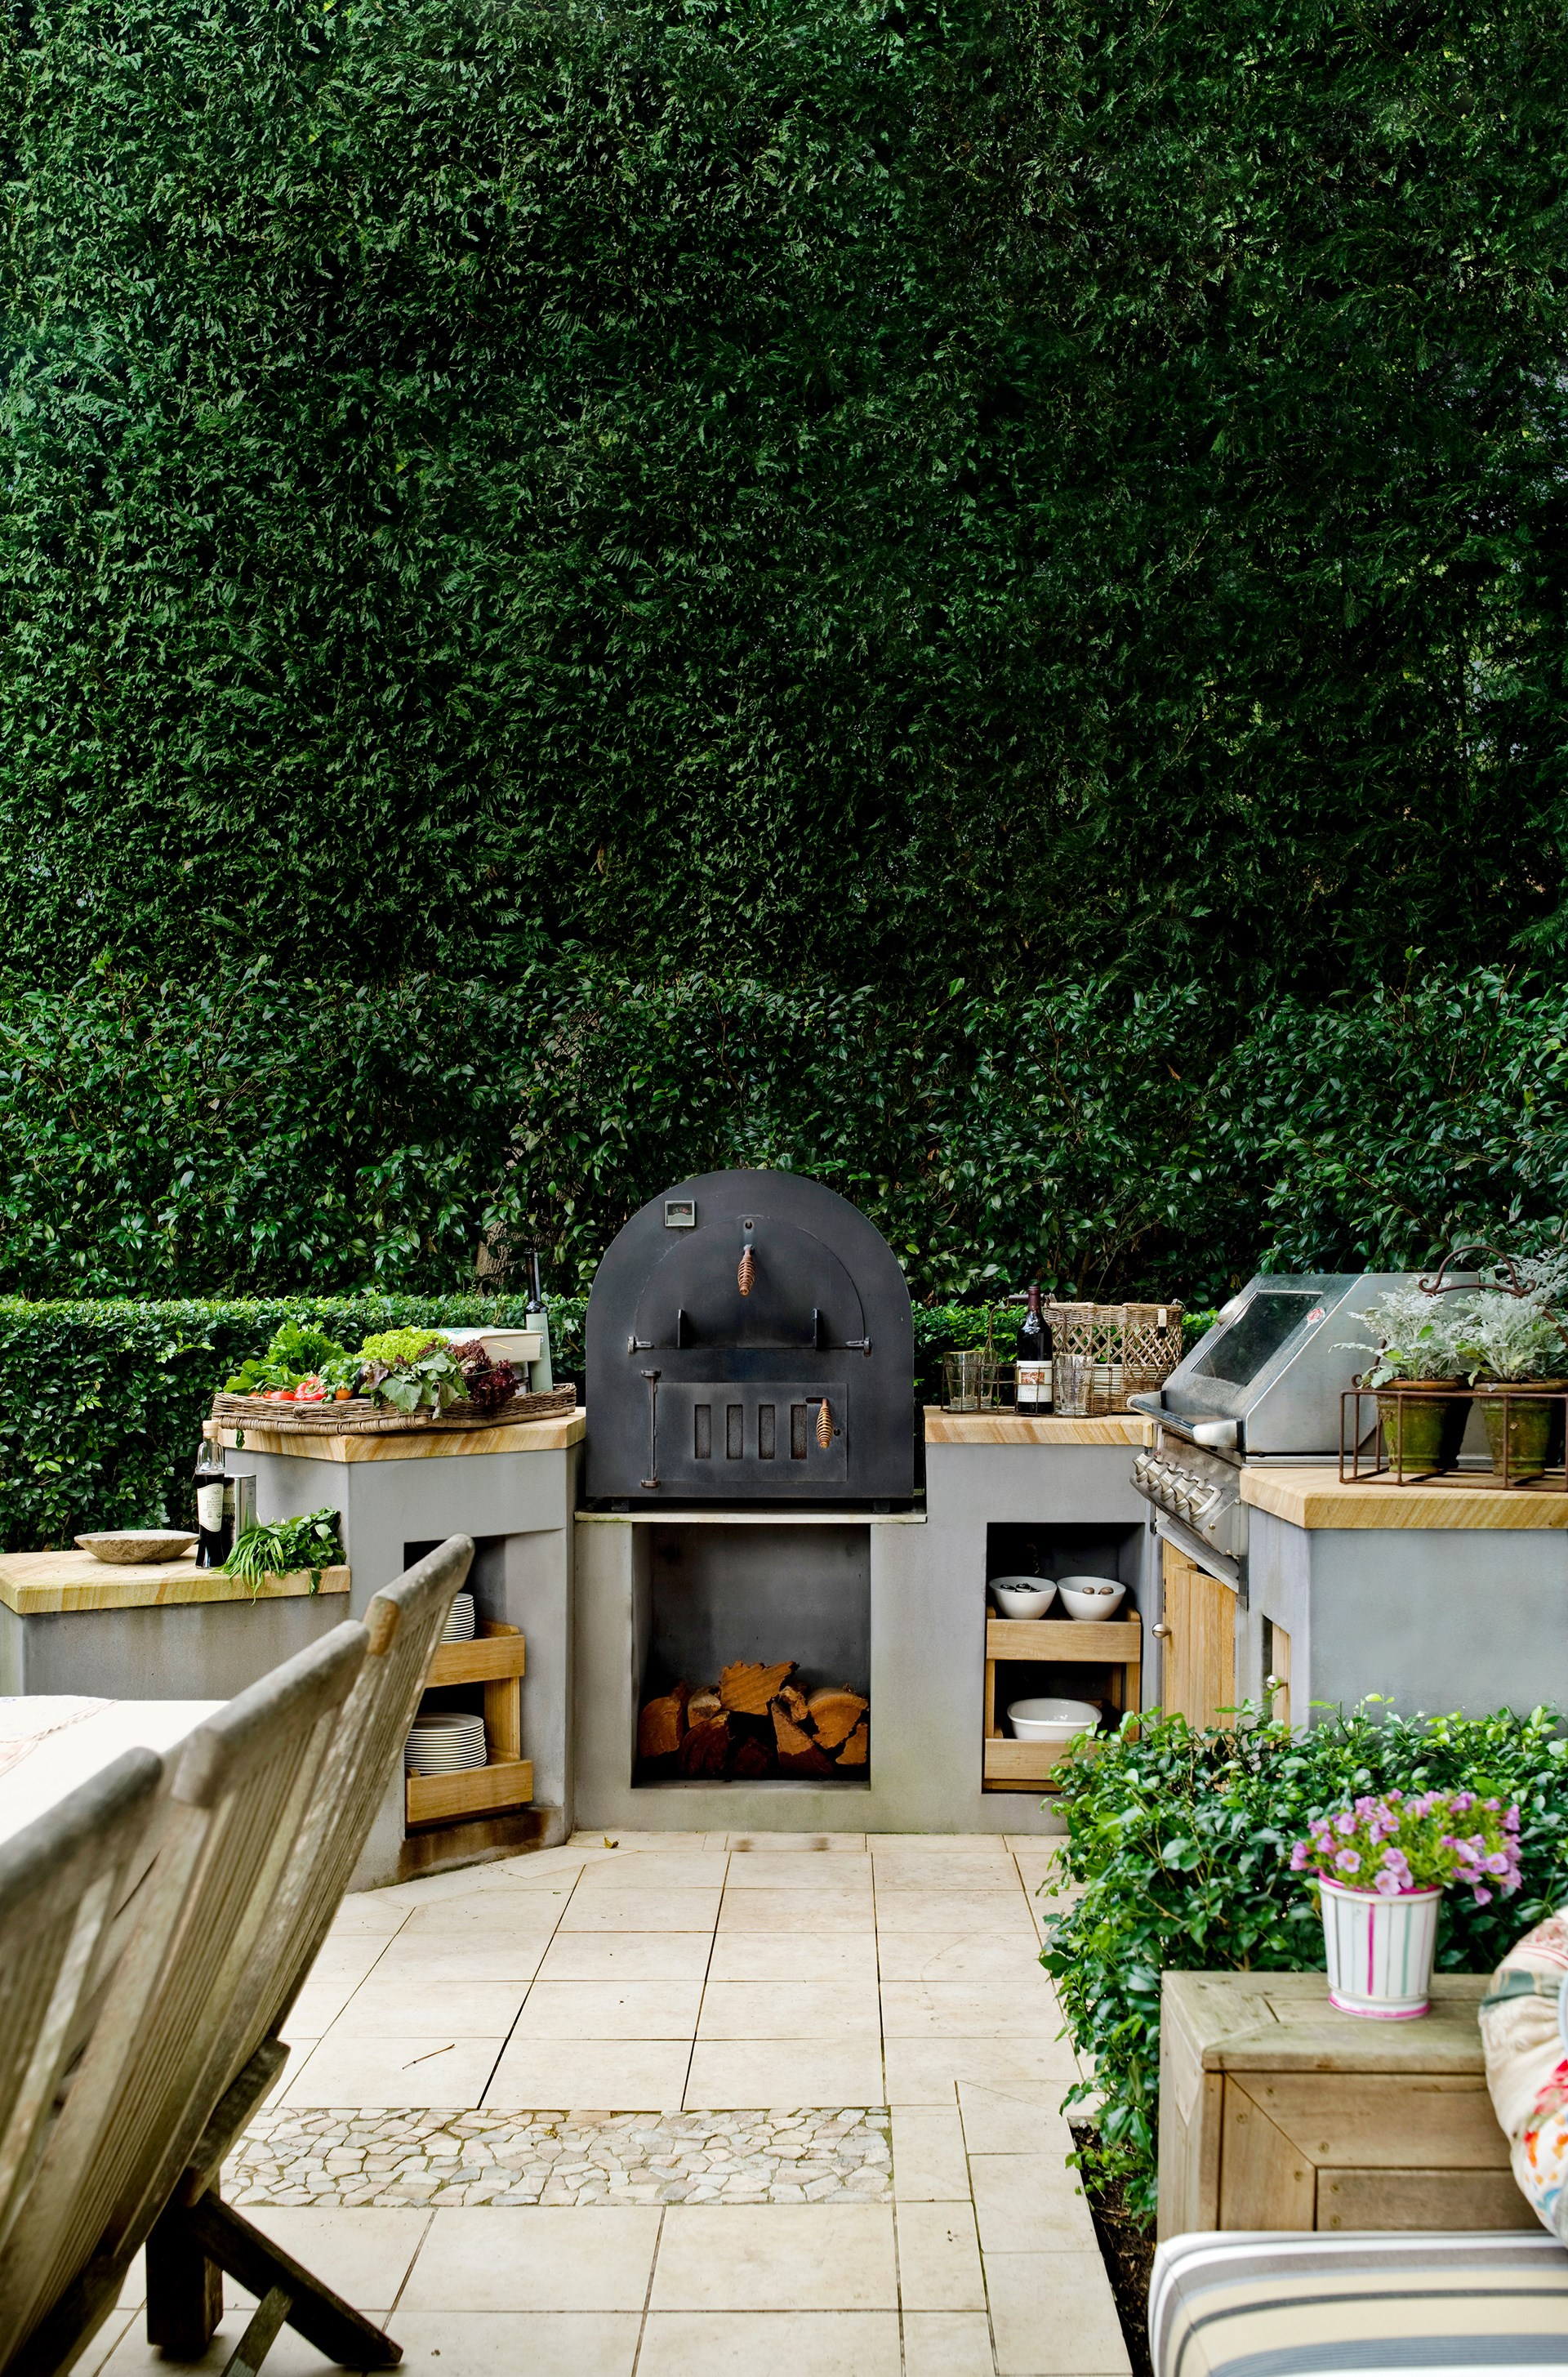 """Give your barbecue some [tender love and care](http://www.homestolove.com.au/how-to-care-for-your-barbecue-1897/?utm_campaign=supplier/